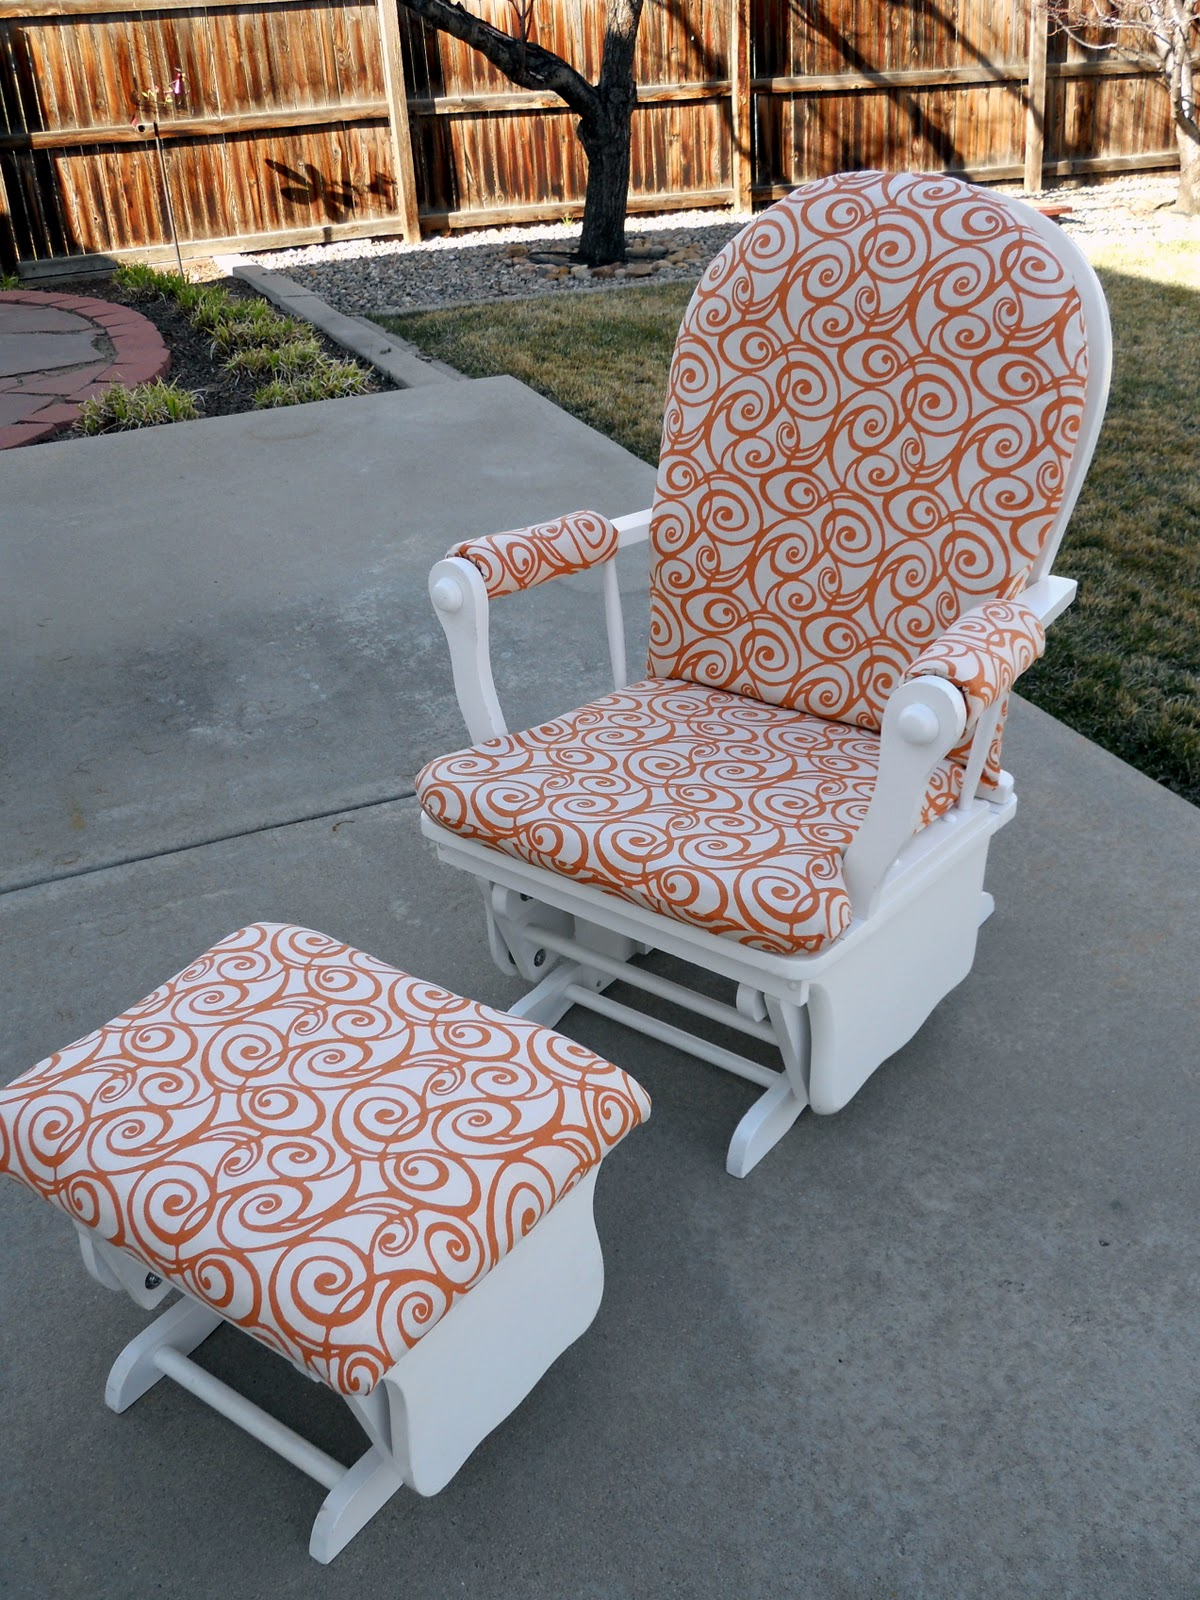 babies r us glider chair australia wooden chairs wedding just another hang up from slightly used to almost new